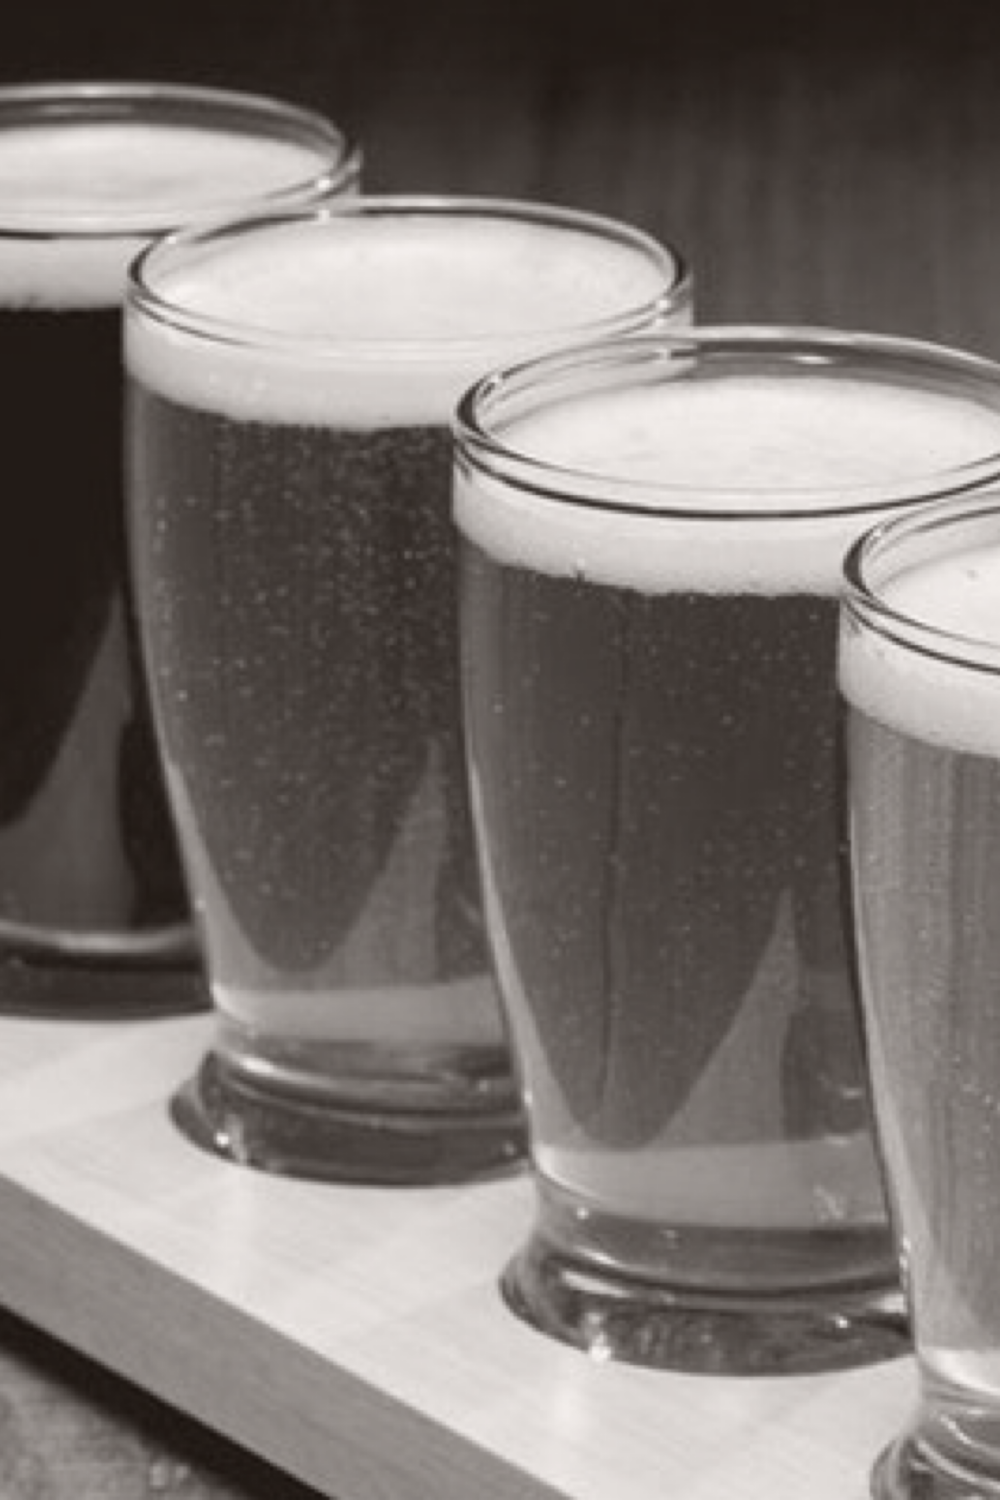 Uptown Beer Walk - January 6Taste delicious microbrews and enjoy lunch in a hidden beer garden.